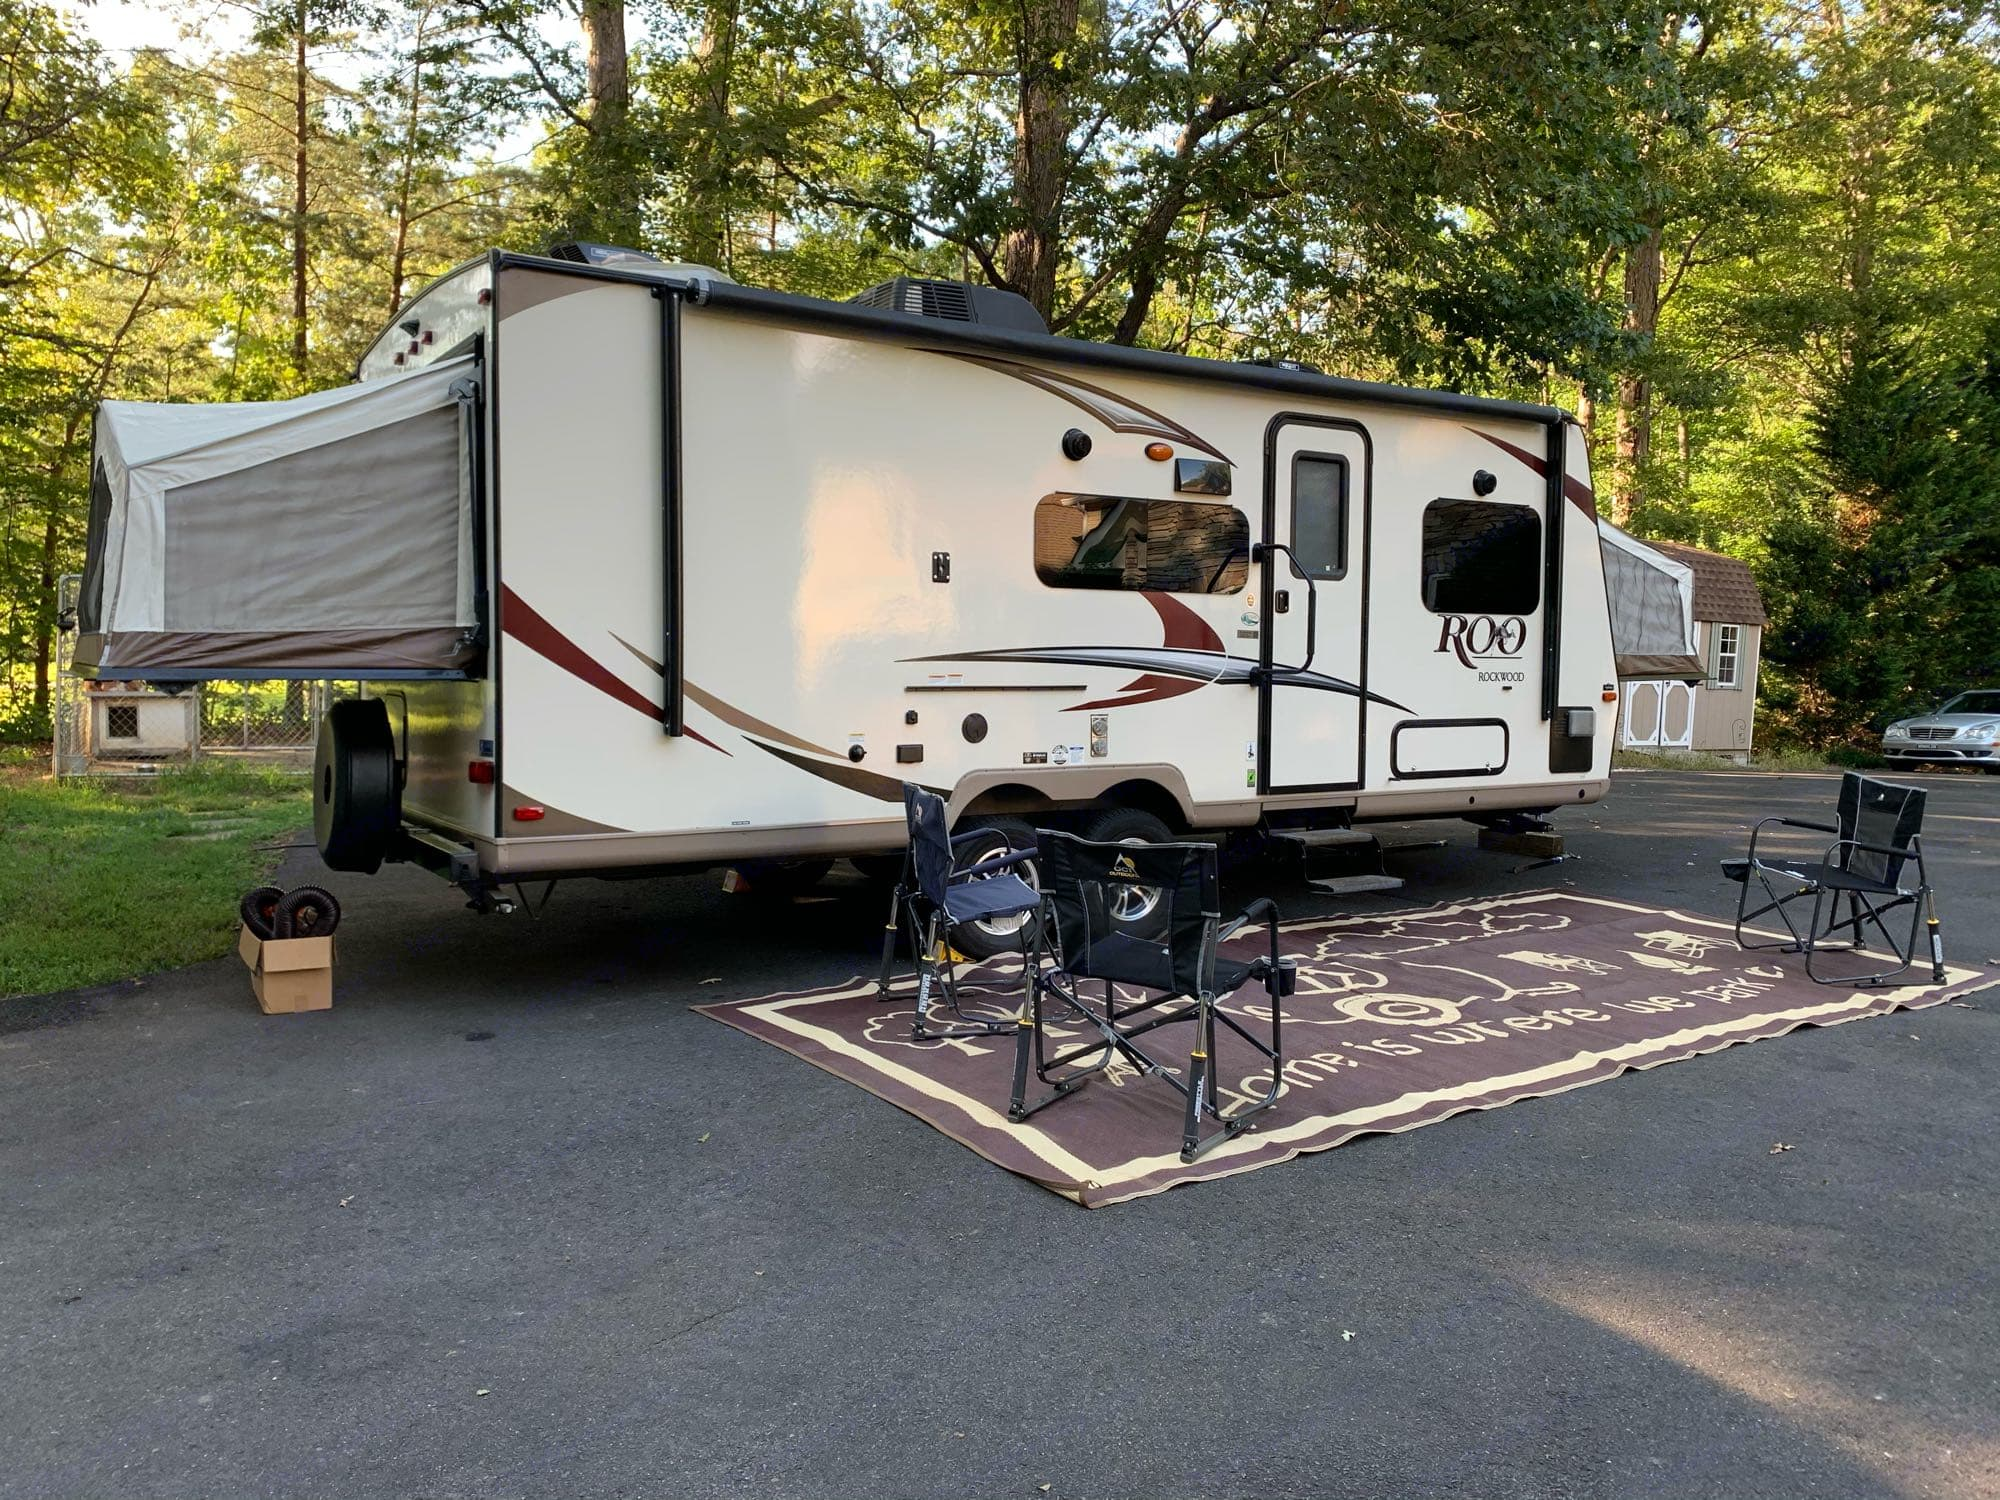 outdoor rug and 3 chairs. Forest River Rockwood Roo 2018